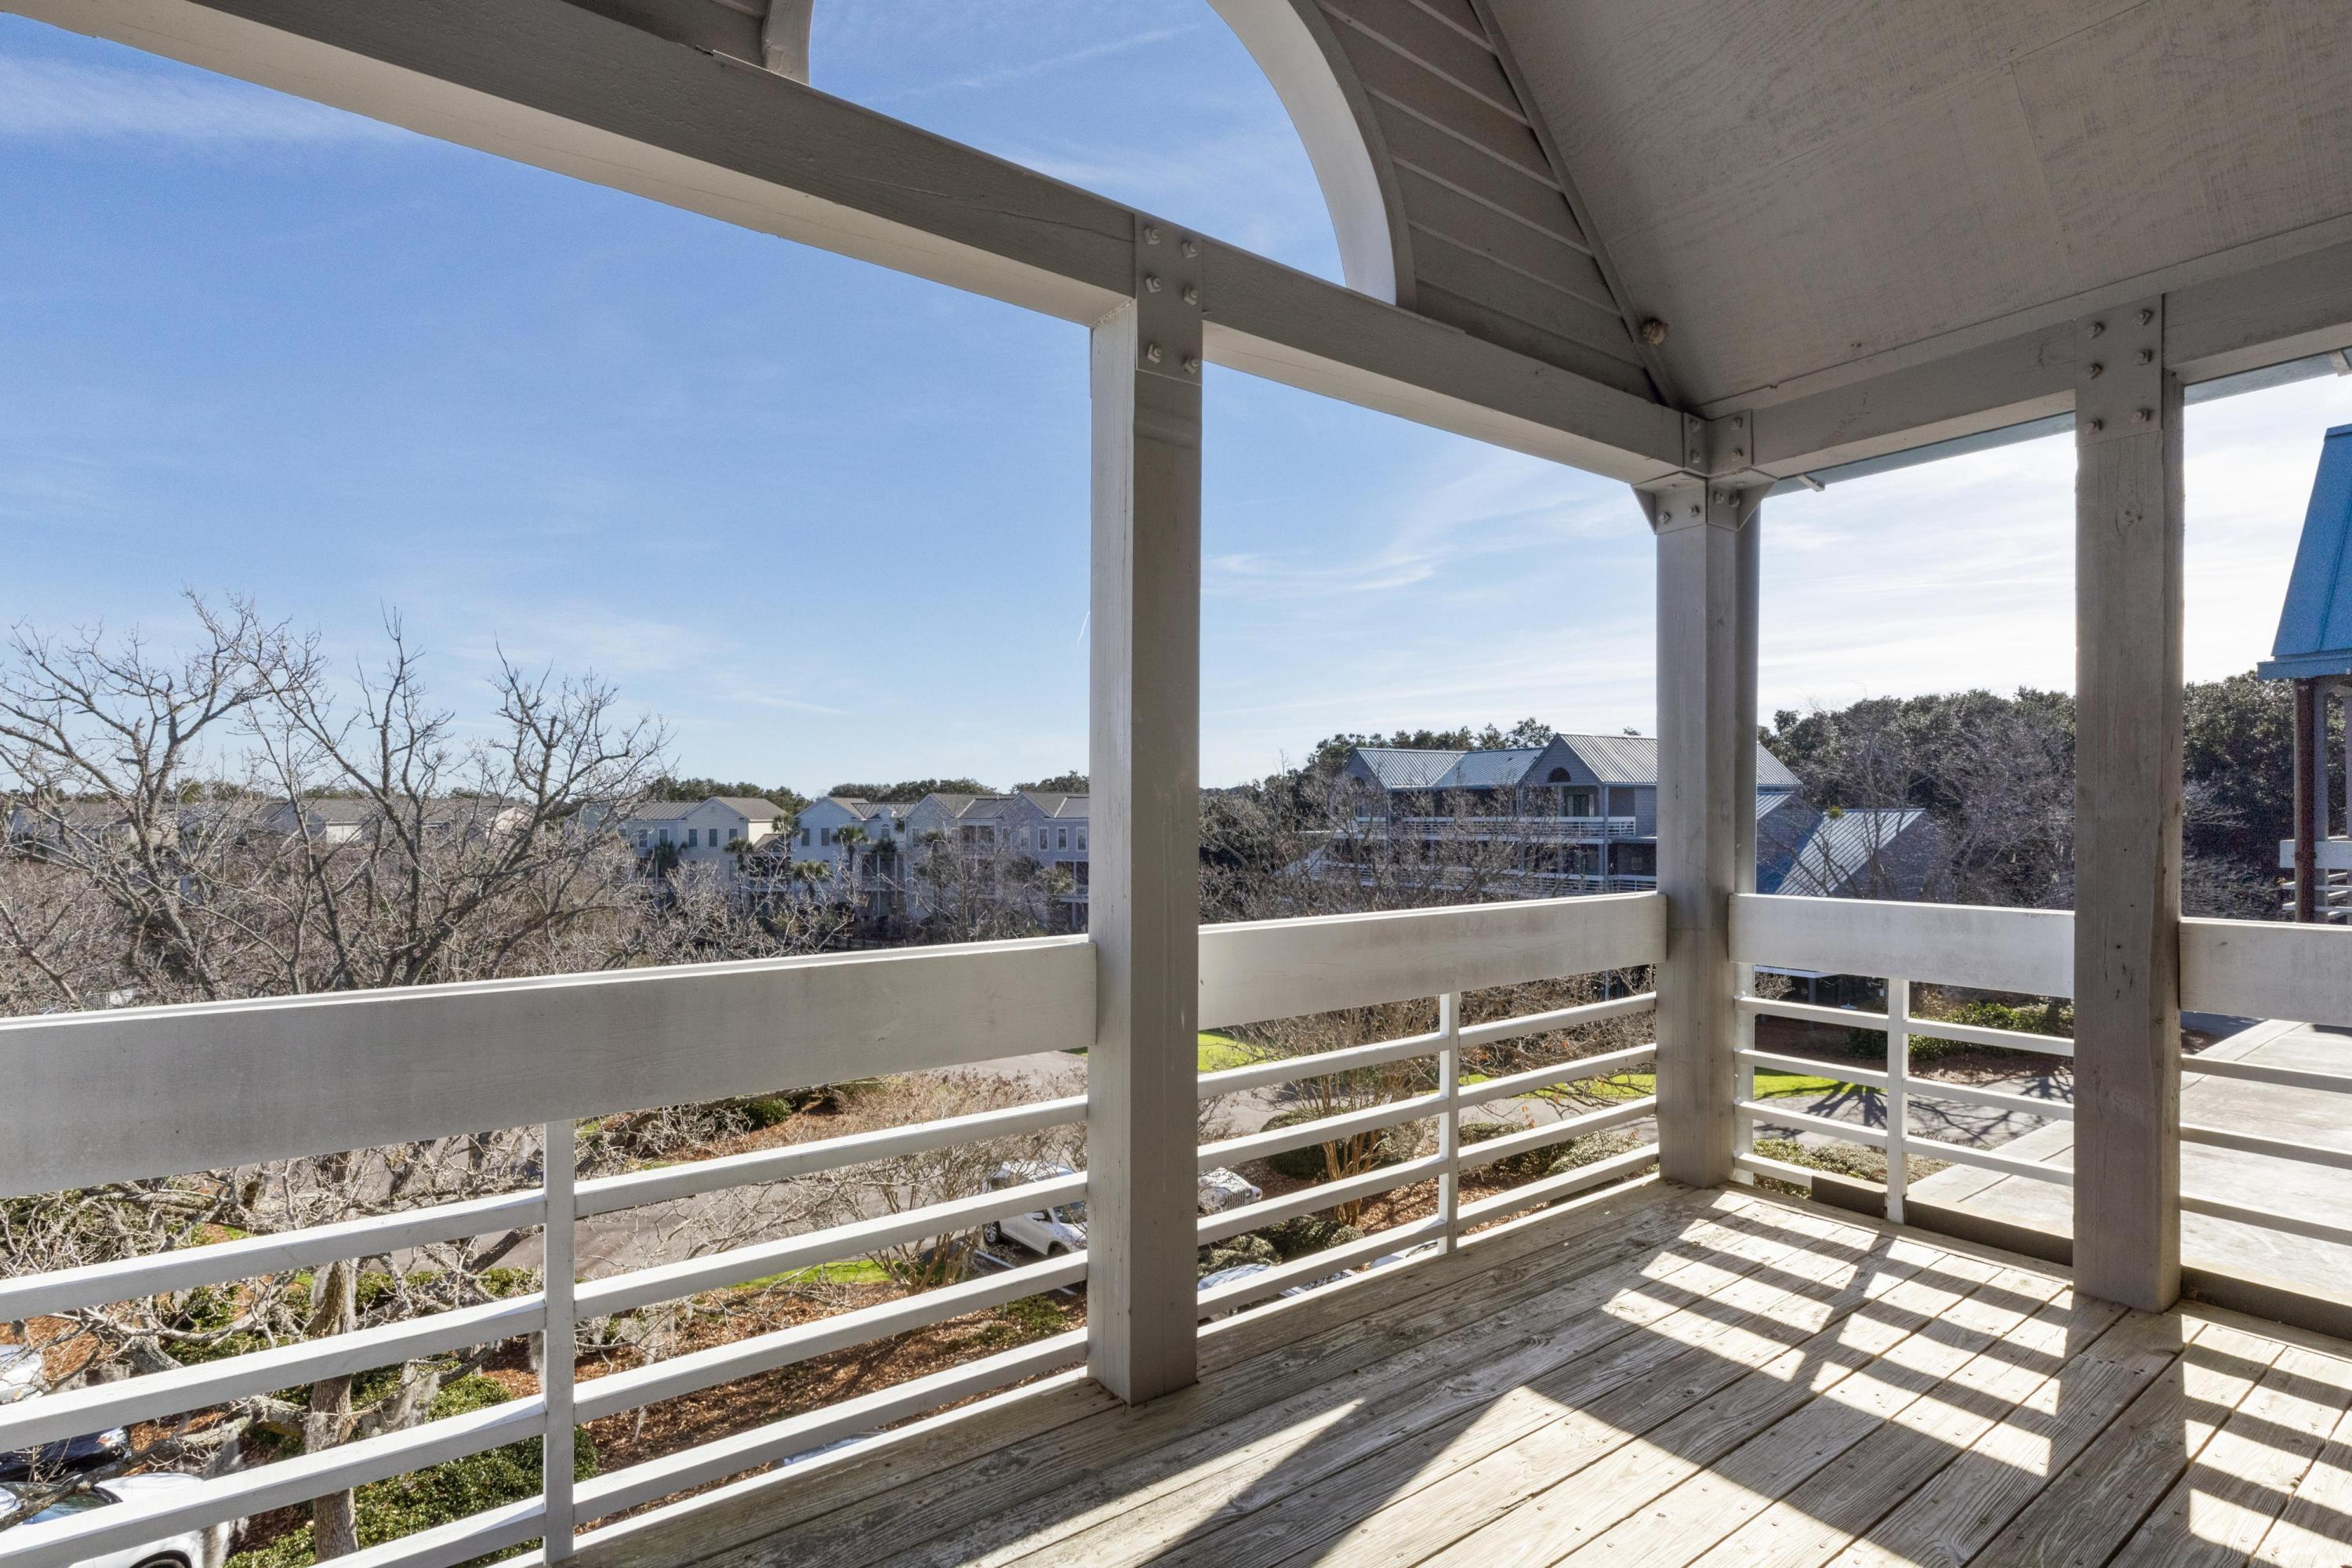 Seabrook Island Condos For Sale - 2416 Racquet Club, Seabrook Island, SC - 26